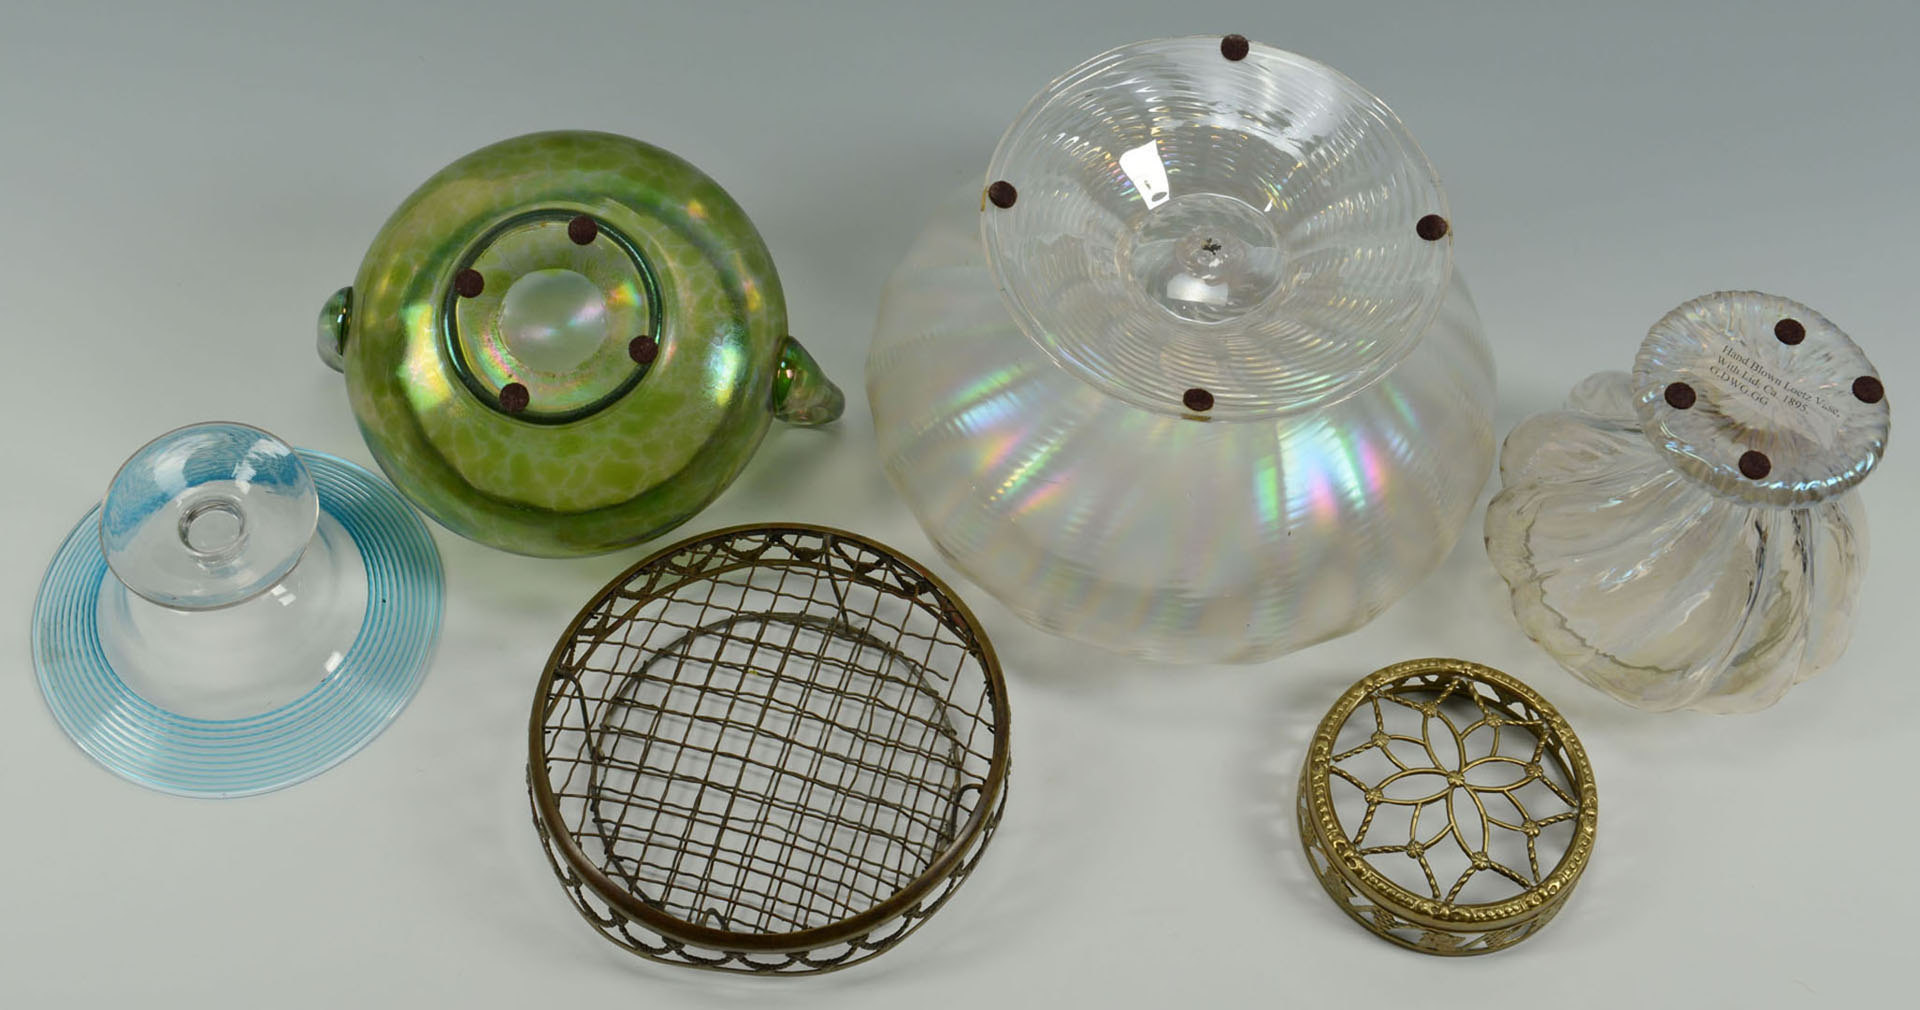 Lot 3088261: 4 Loetz Type Art Glass Items